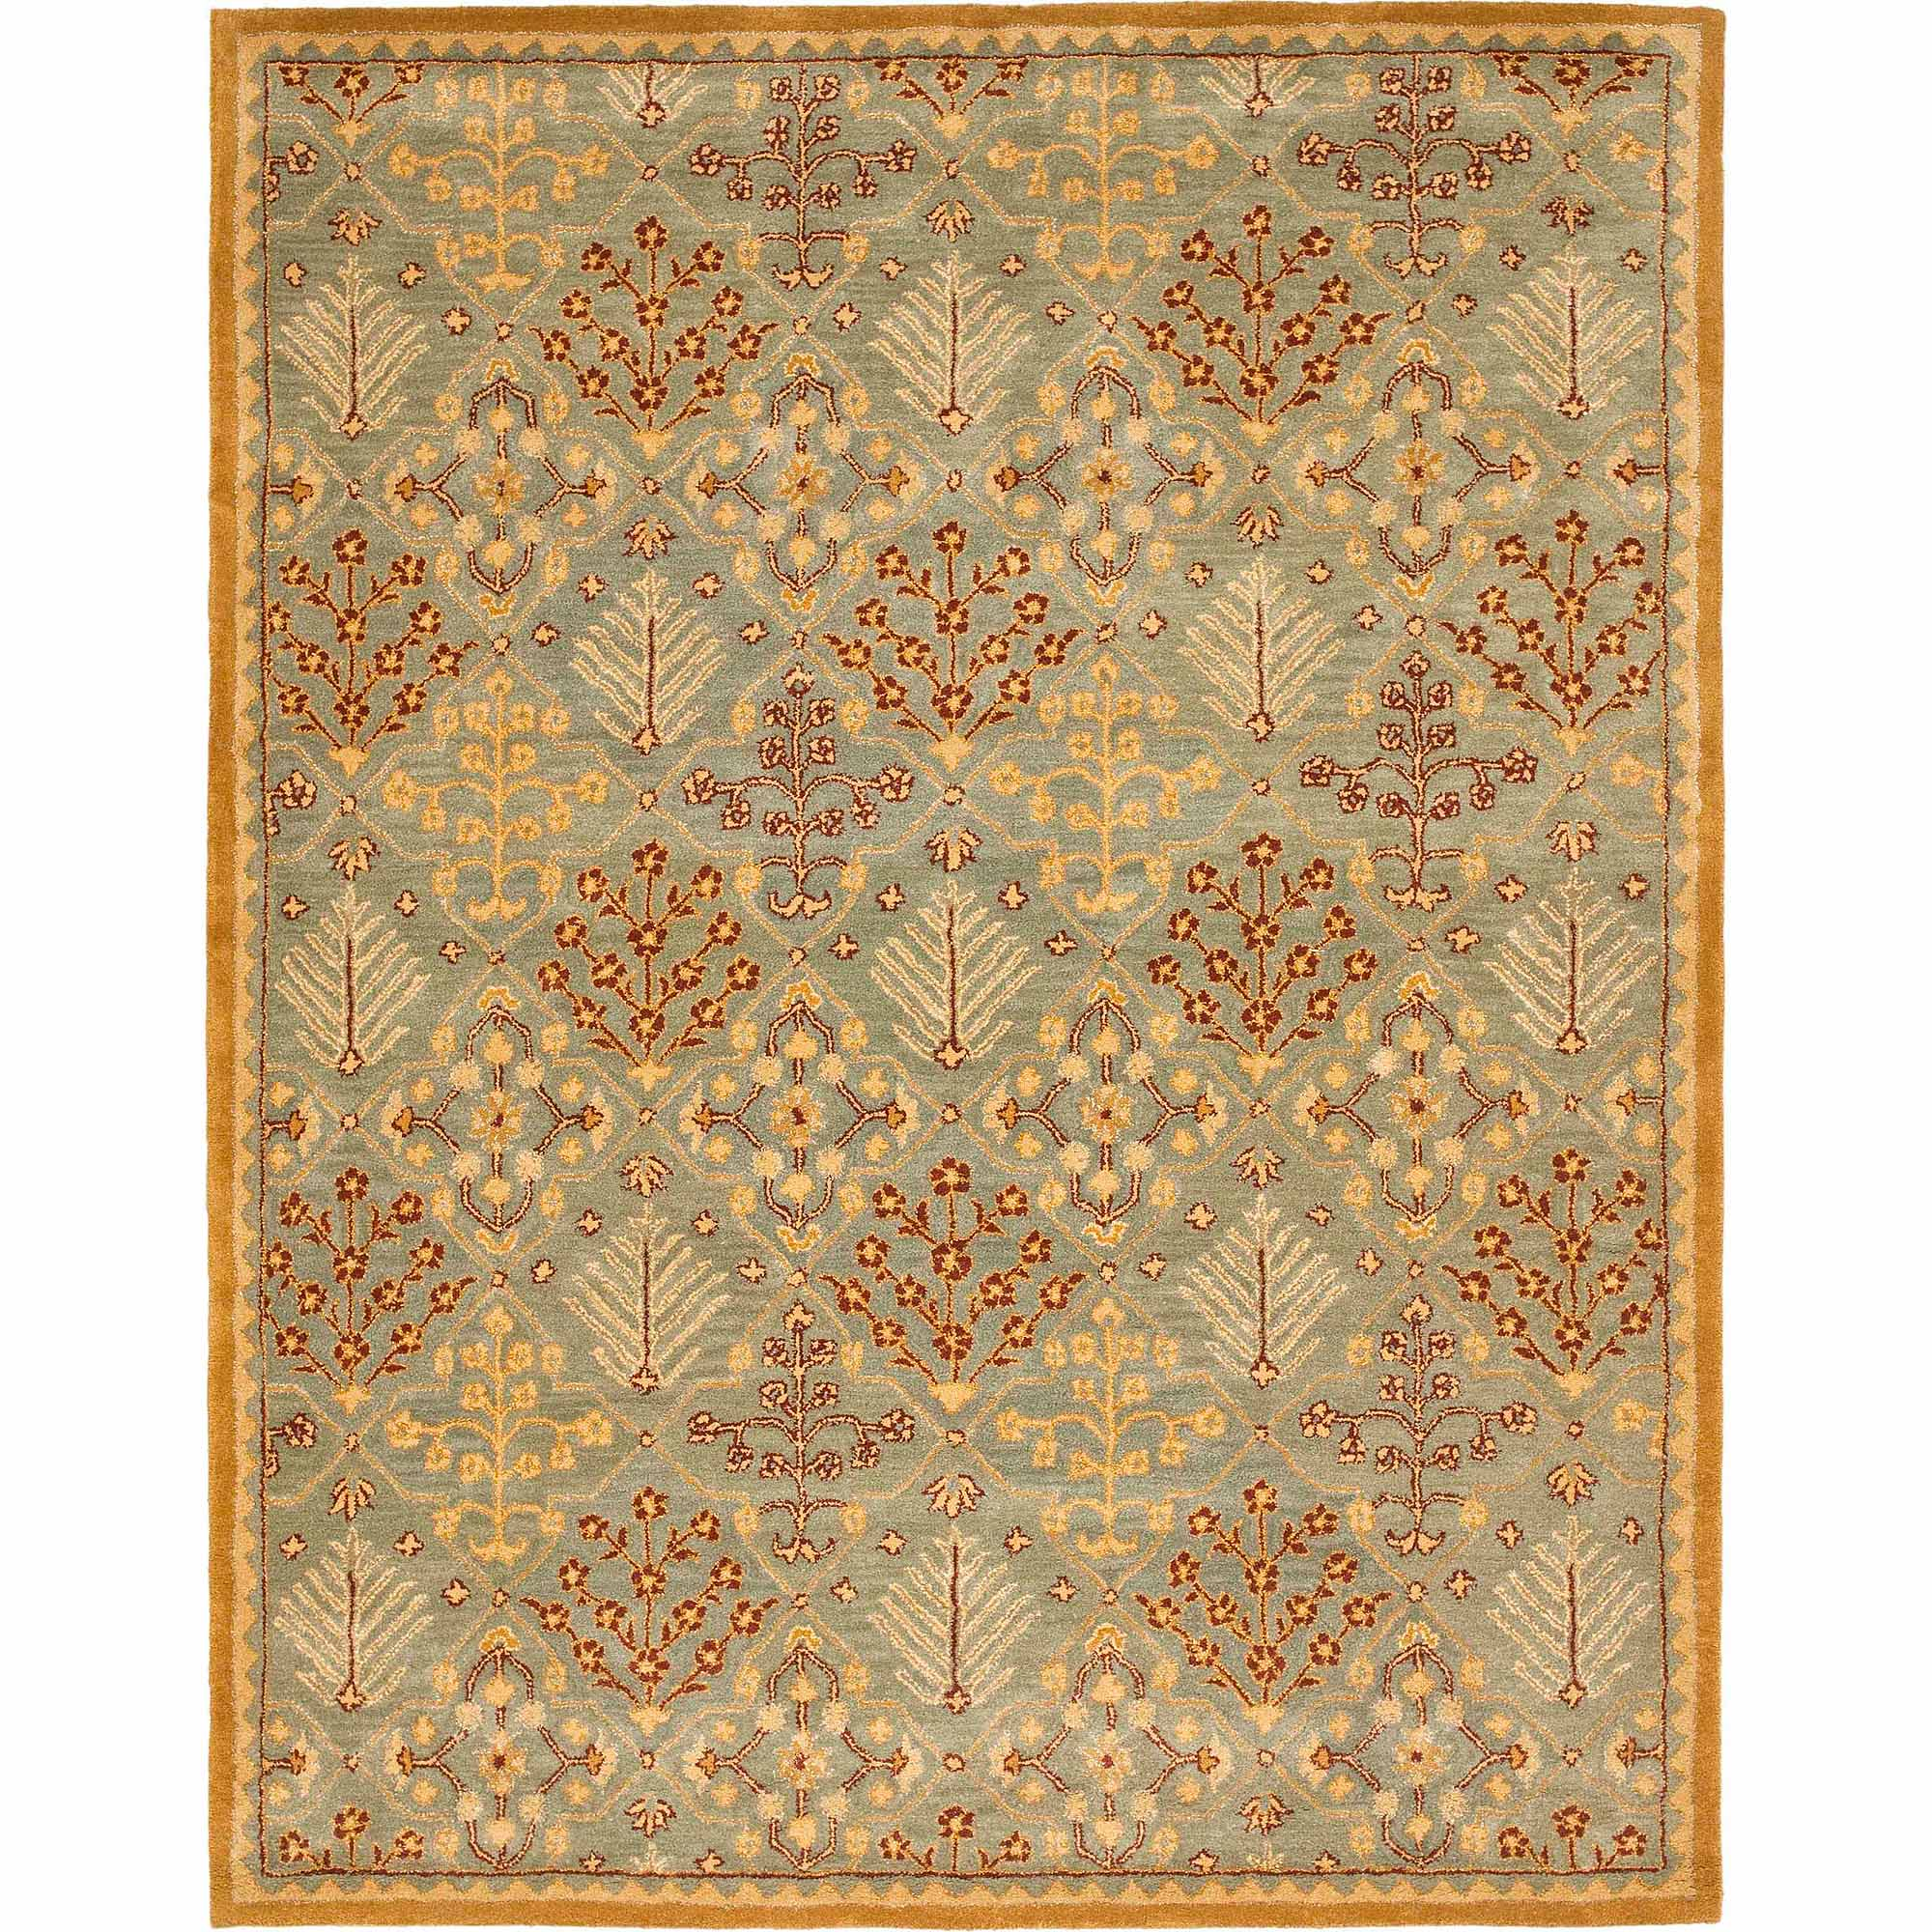 Safavieh Antiquity Raymond Hand-Tufted Wool Area Rug, Light Blue/Gold